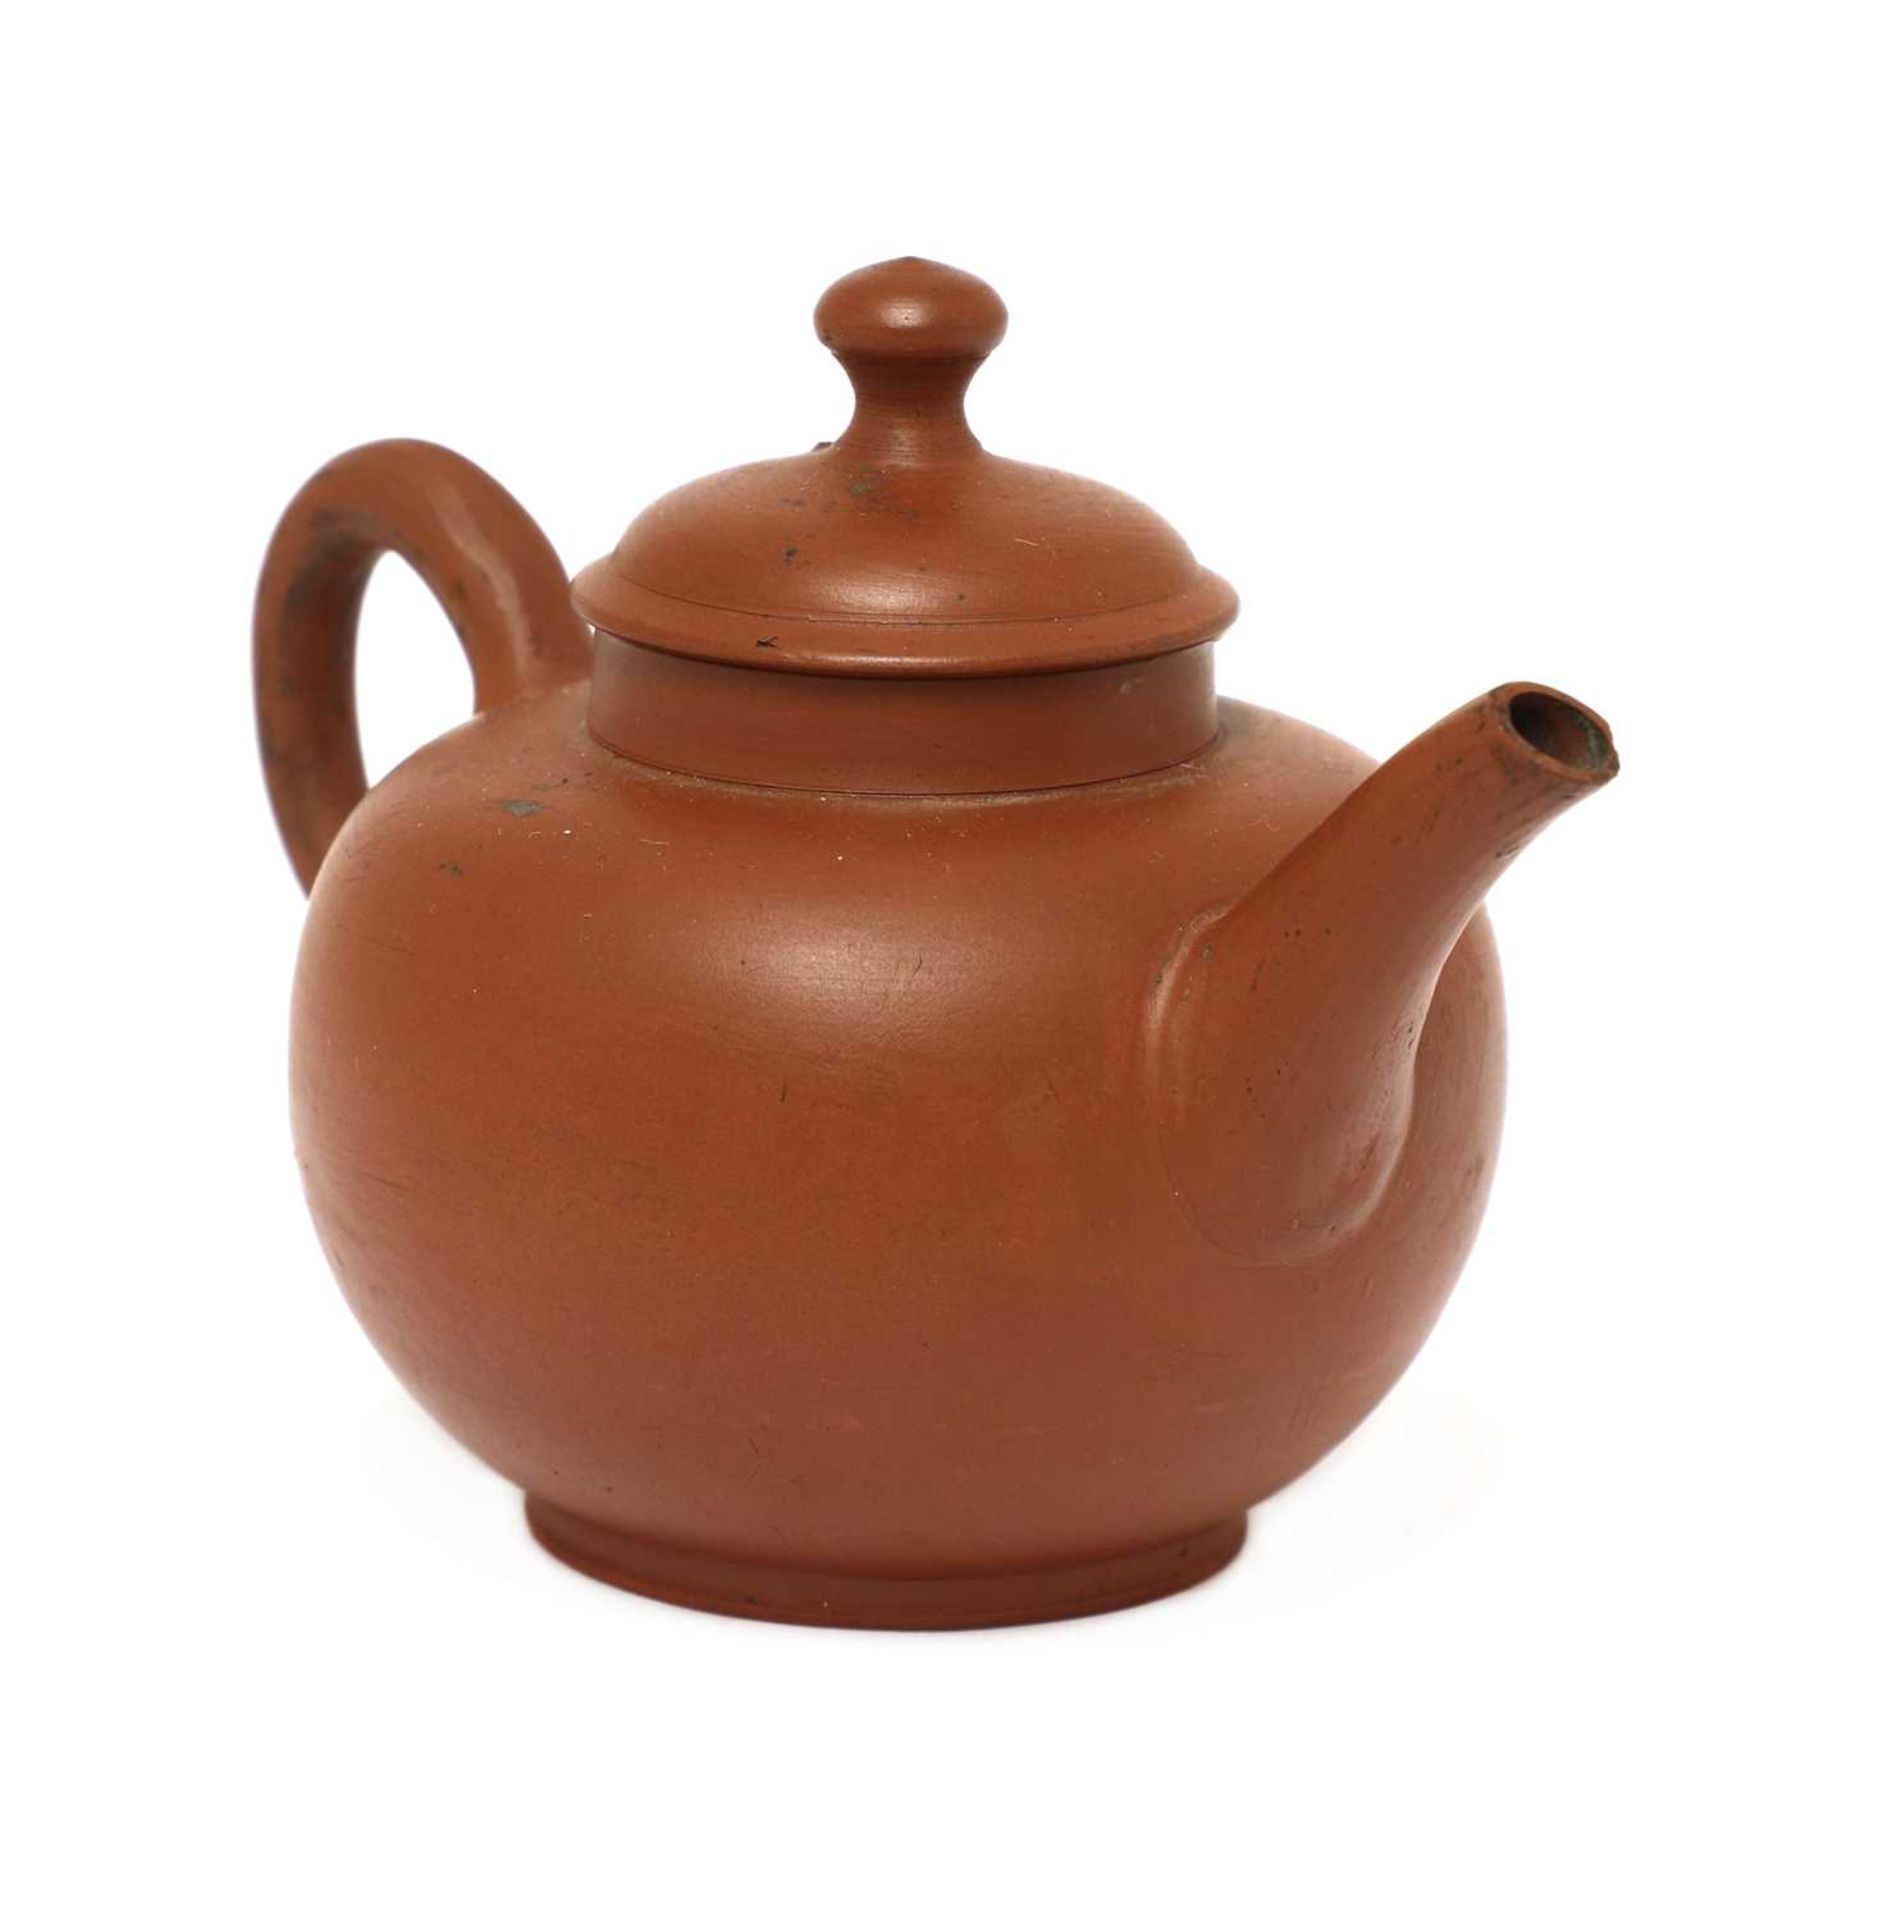 An unusual Staffordshire redware miniature globular teapot and cover, - Image 2 of 4